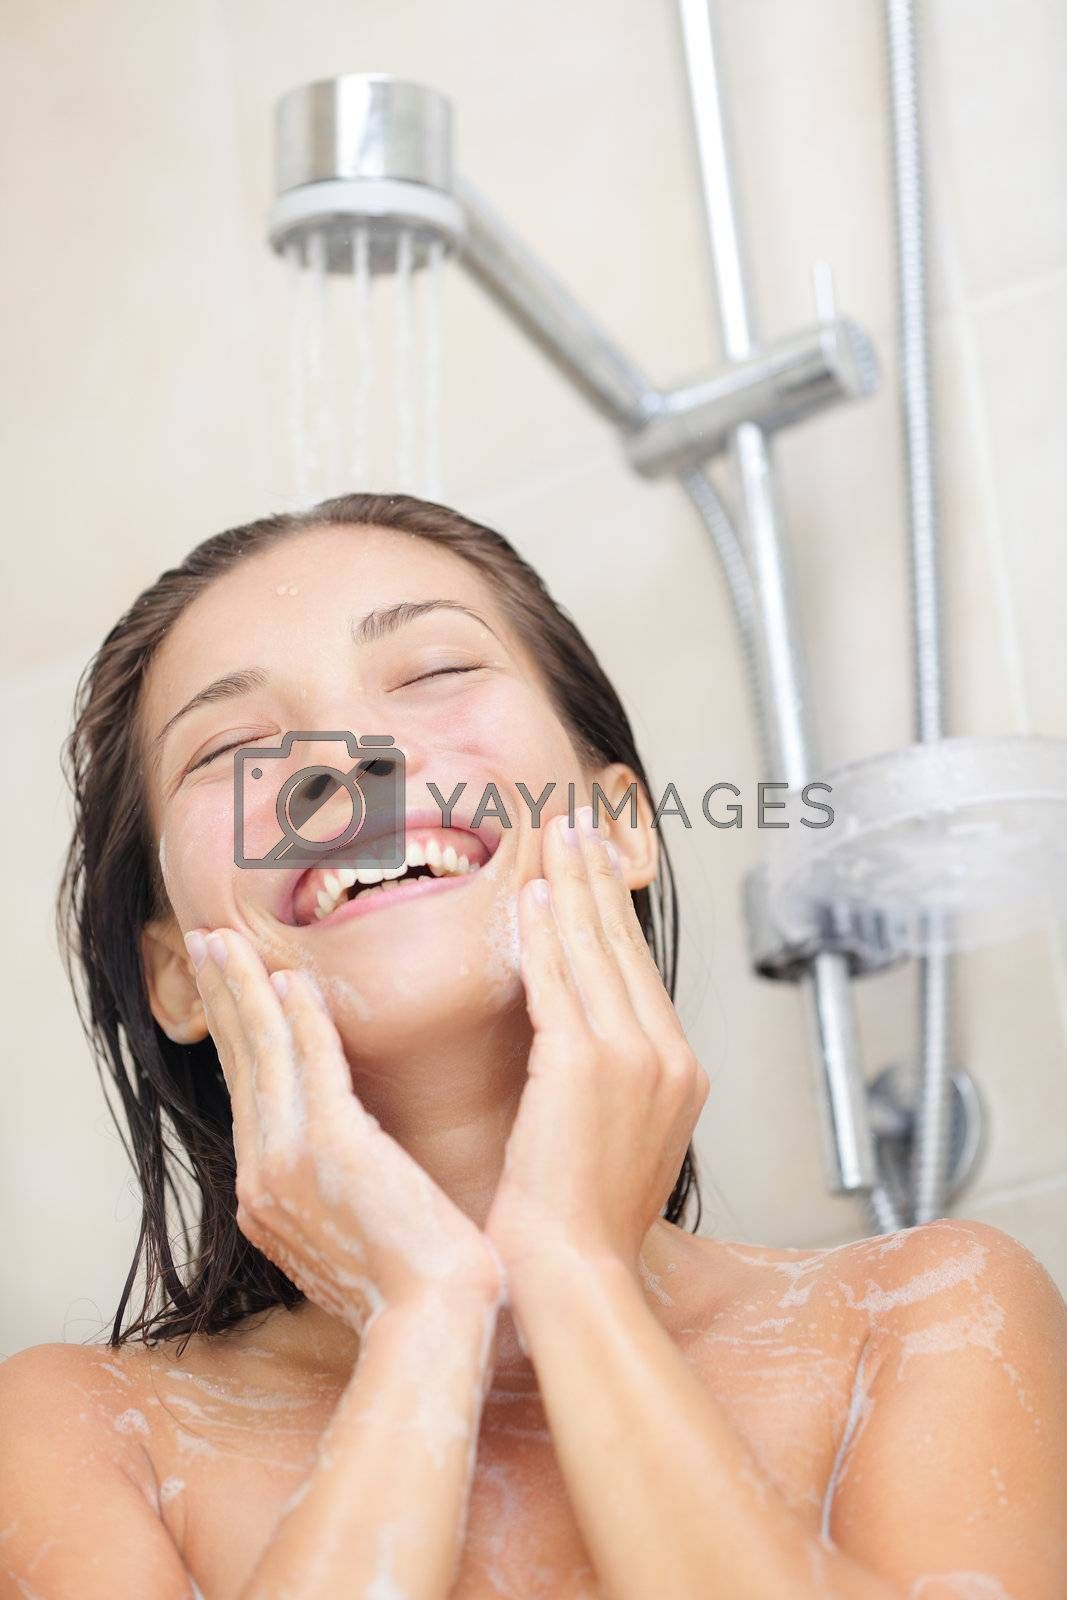 Woman washing face in shower. Showering asian woman enjoying water splashing on face while cleaning face. Portrait of multiracial Asian / Caucasian girl smiling happy. Model in her 20s.